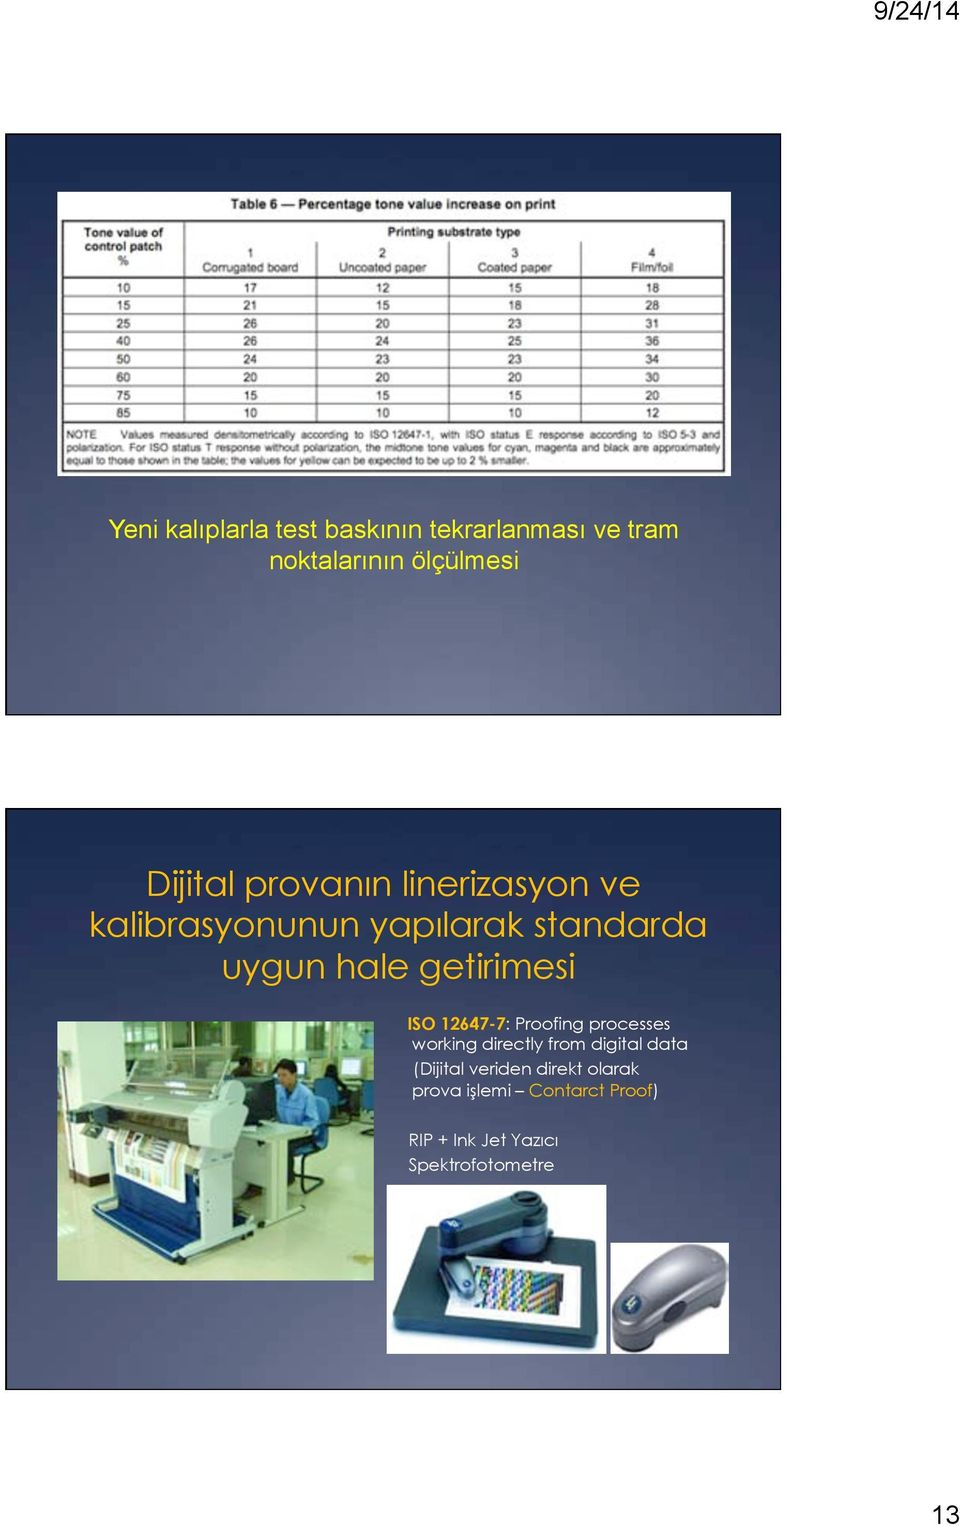 ISO 12647-7: Proofing processes working directly from digital data (Dijital veriden